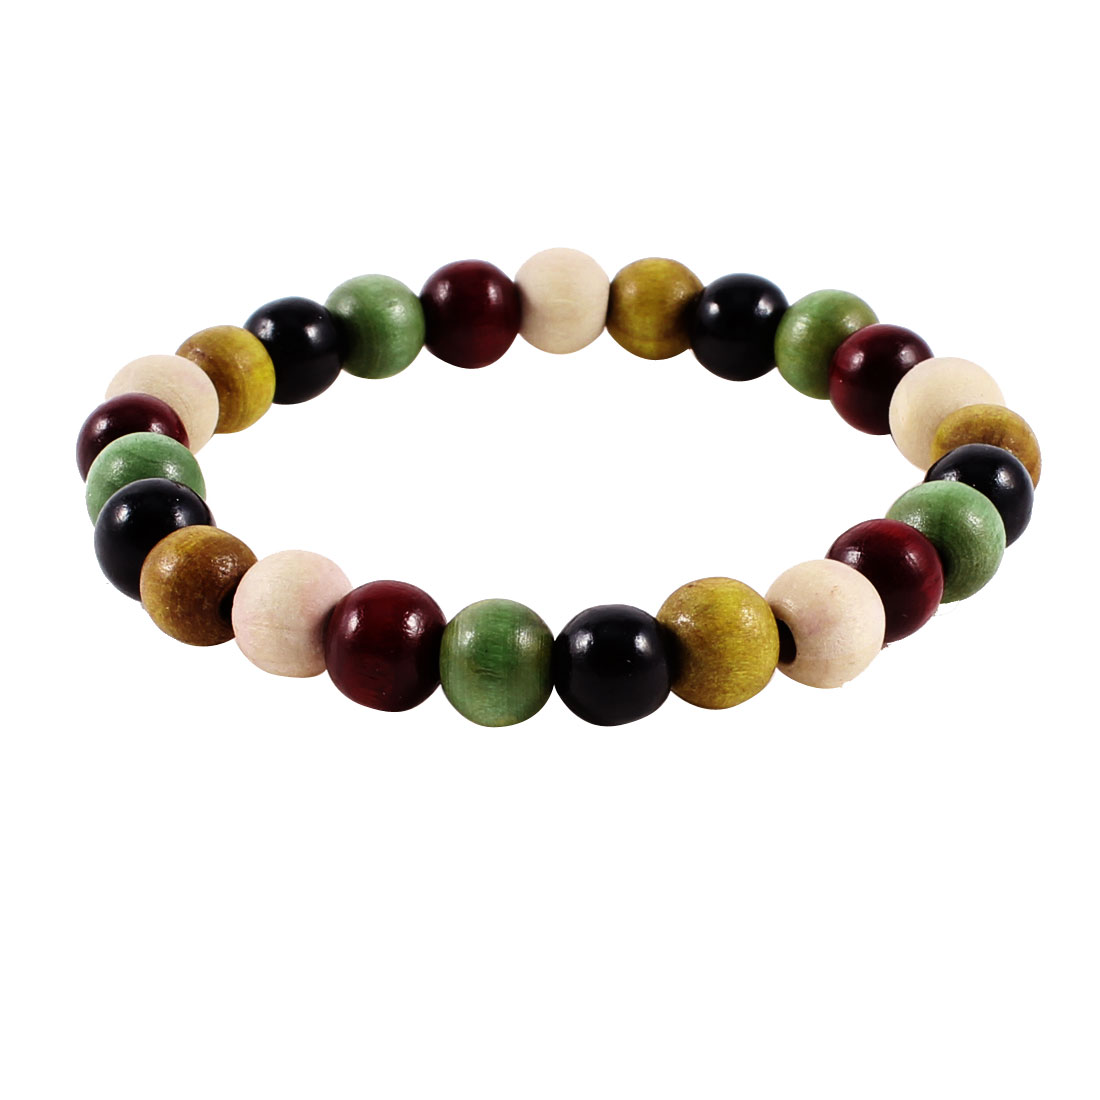 Girl Jewelry Colored Wooden Beads Decor Elastic Wrist Bracelet Bangle